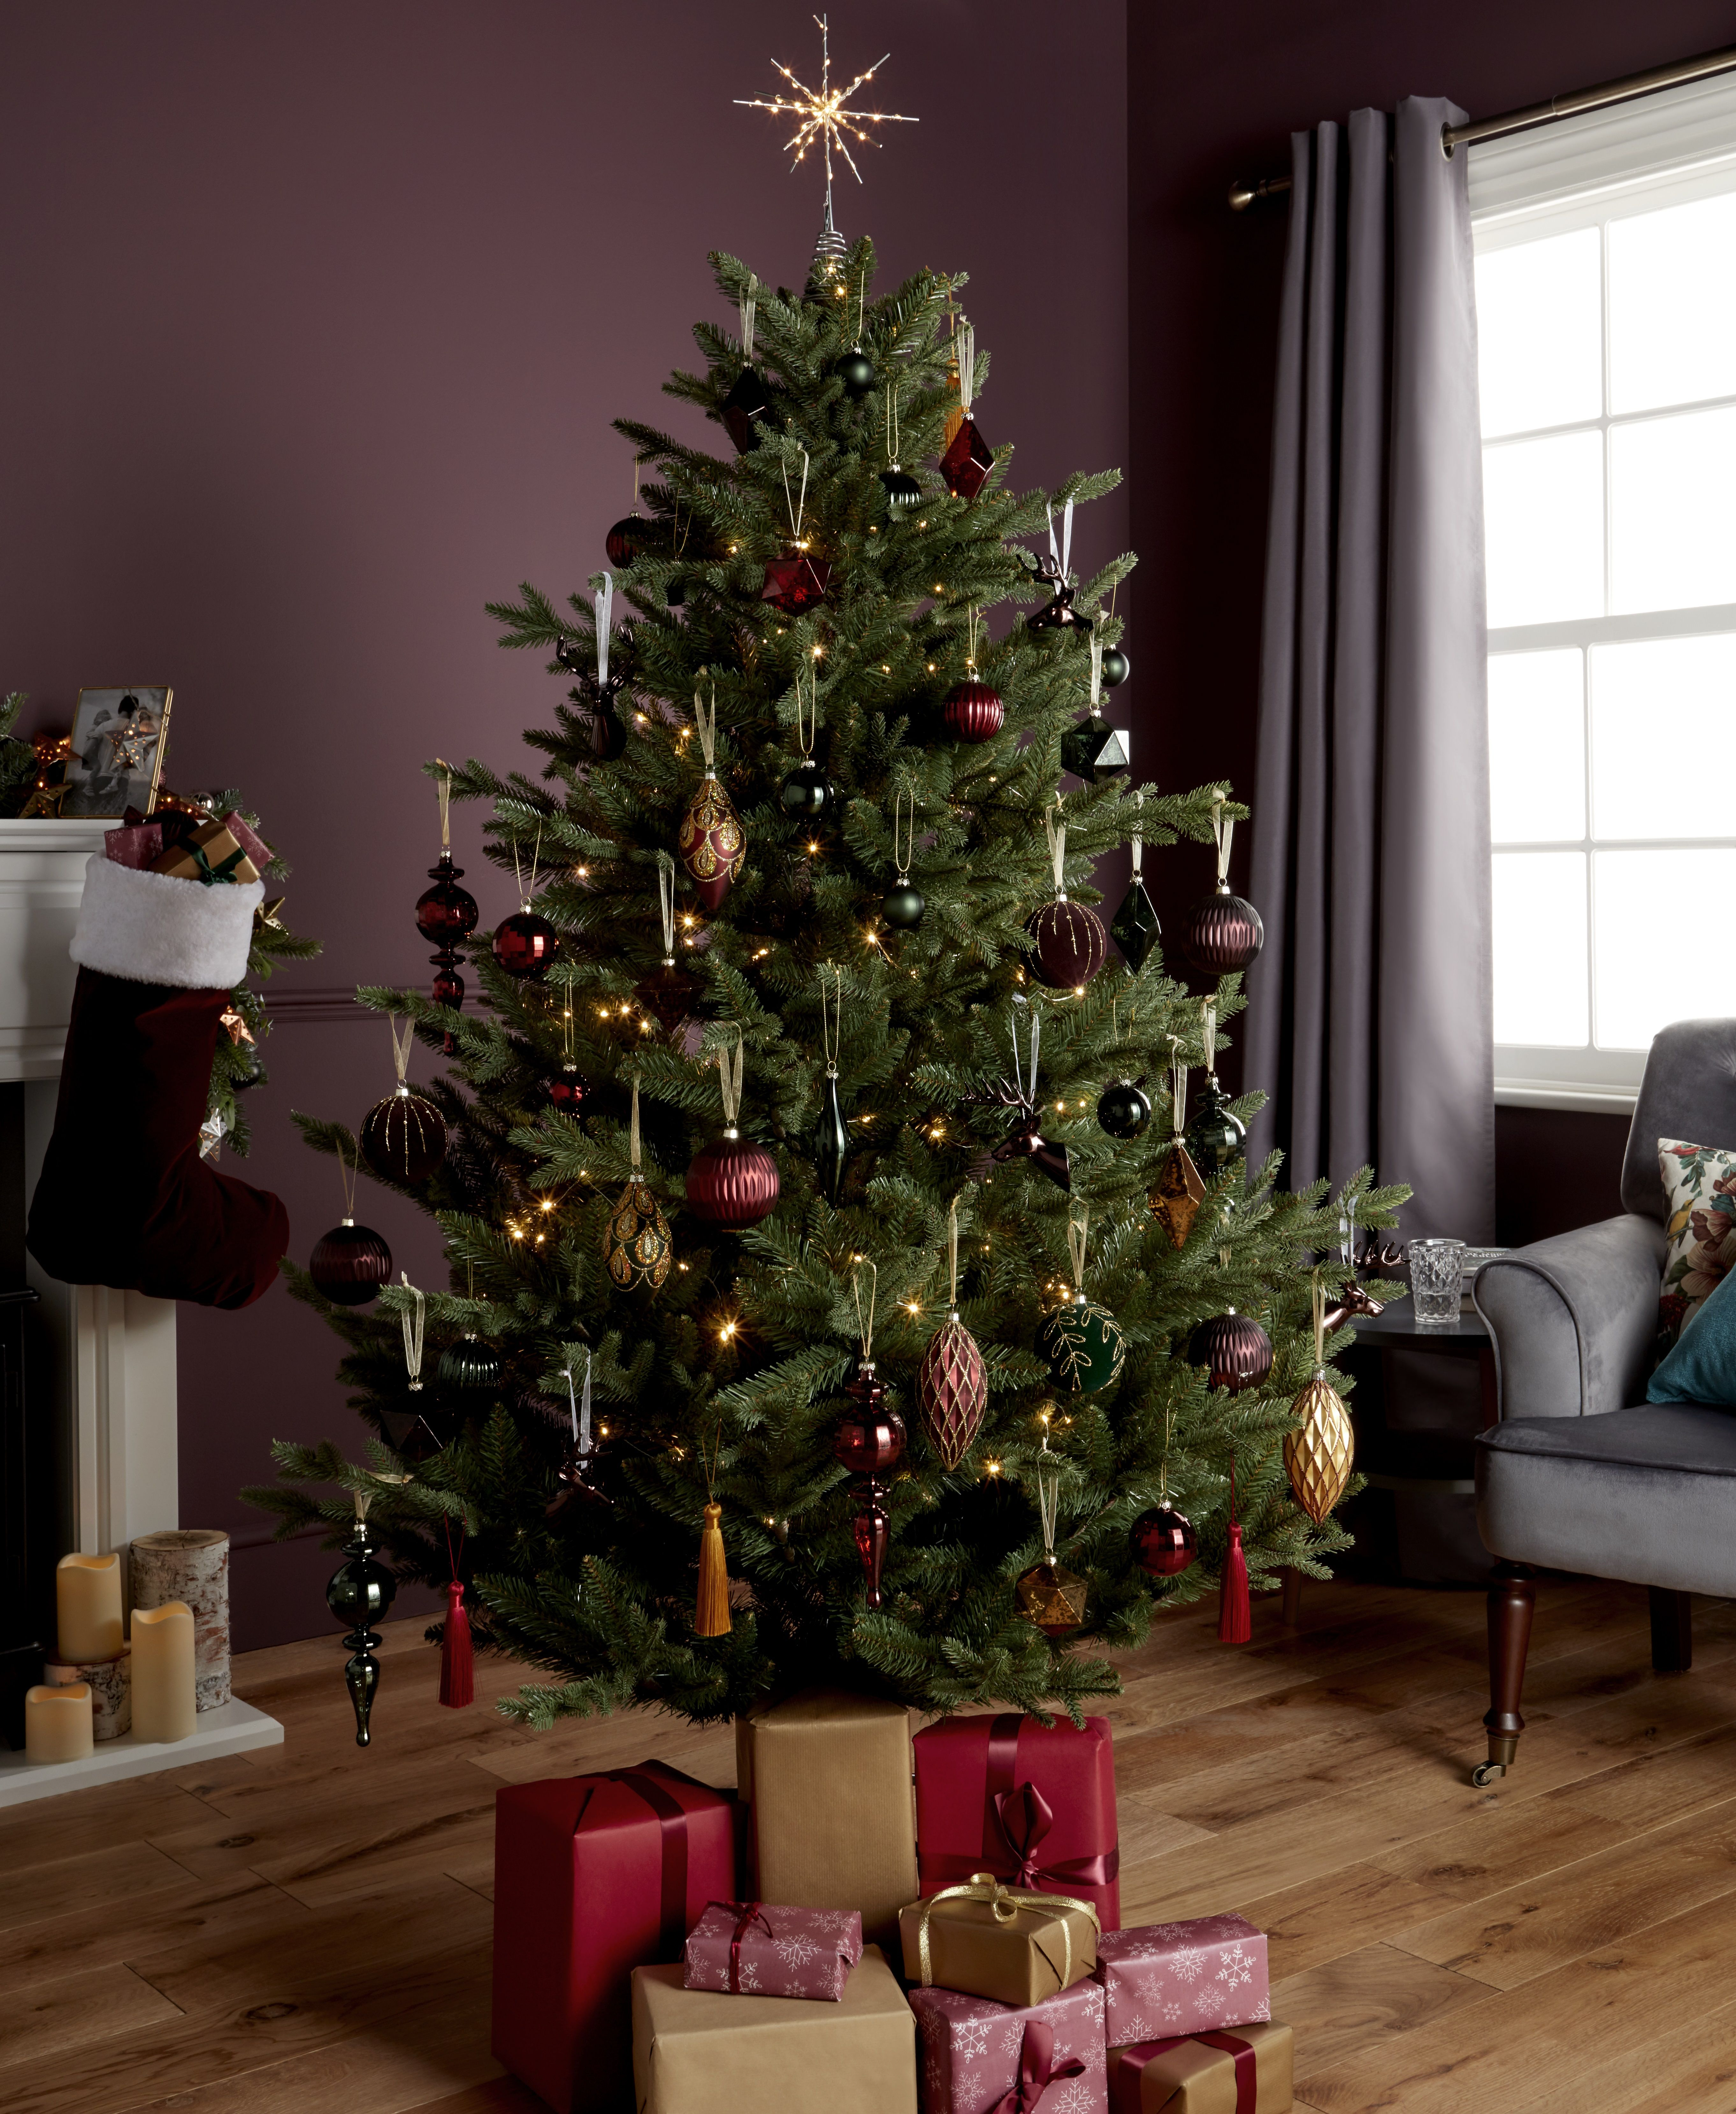 It Doesn T Quite Feel Like Christmas Until The Tree Is Decorated Presents Are Wrapped And Stockings Are Finally On The Mantelpie Holiday Decor Decor Christmas